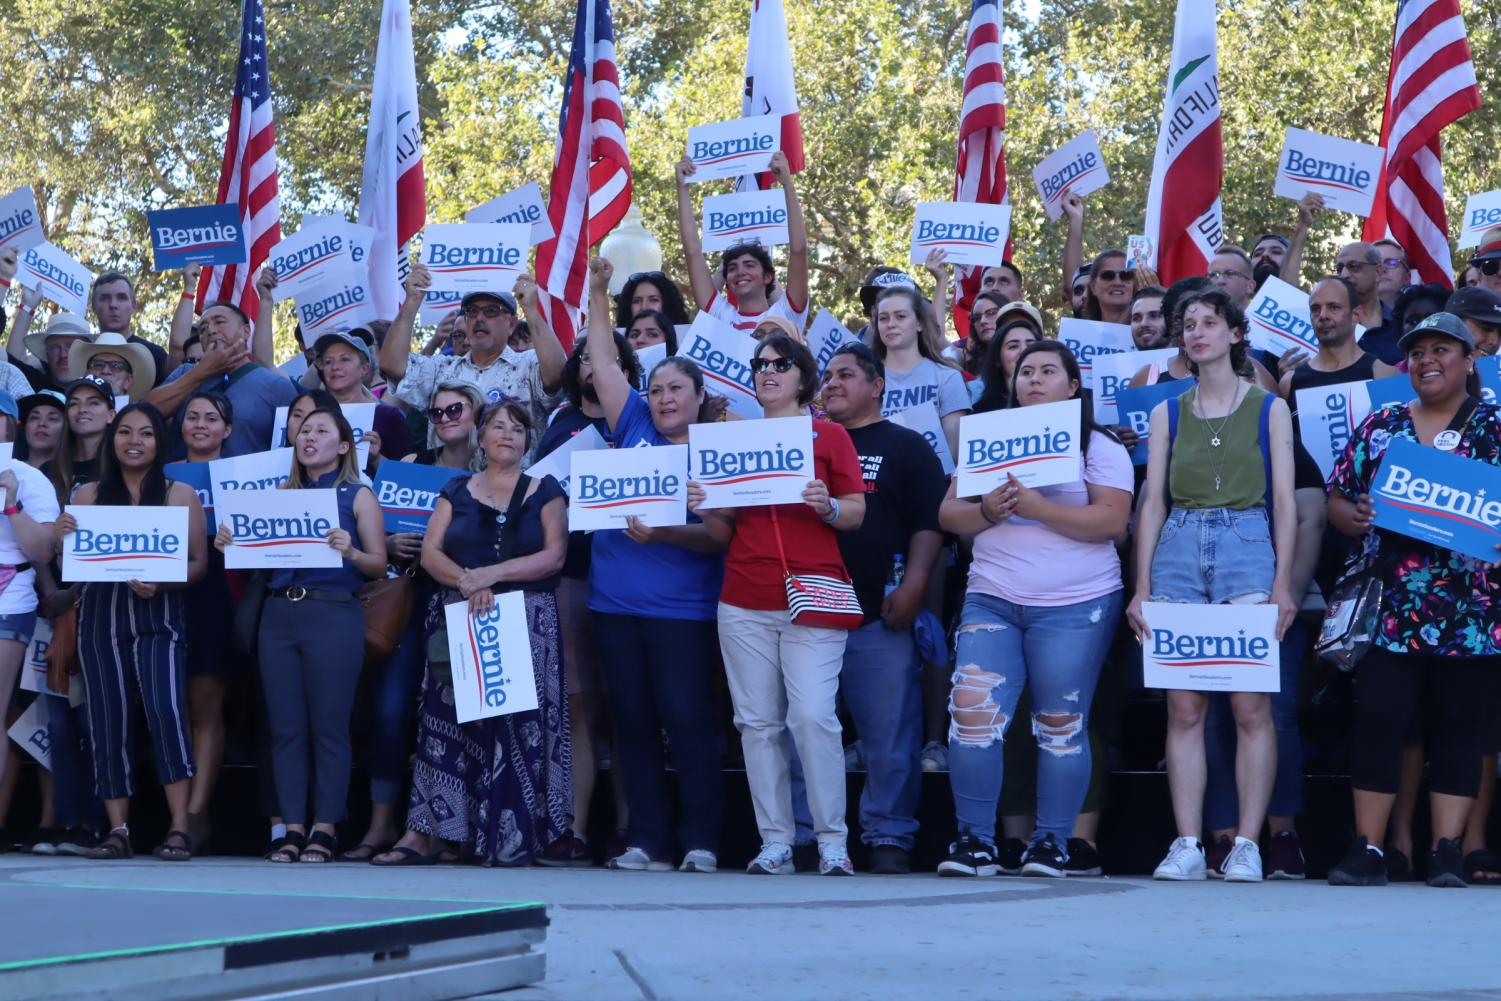 Supporters+stand+on+stage+at+Bernie+Sander%27s+campaign+rally+at+Cesar+Chavez+Plaza+on+Thursday%2C+Aug.+22%2C+2019.+Sanders+speech+would+focus+on+his+platform+of+climate+change%2C+student+loans%2C+Medicare+for+All+and+economic+equality.